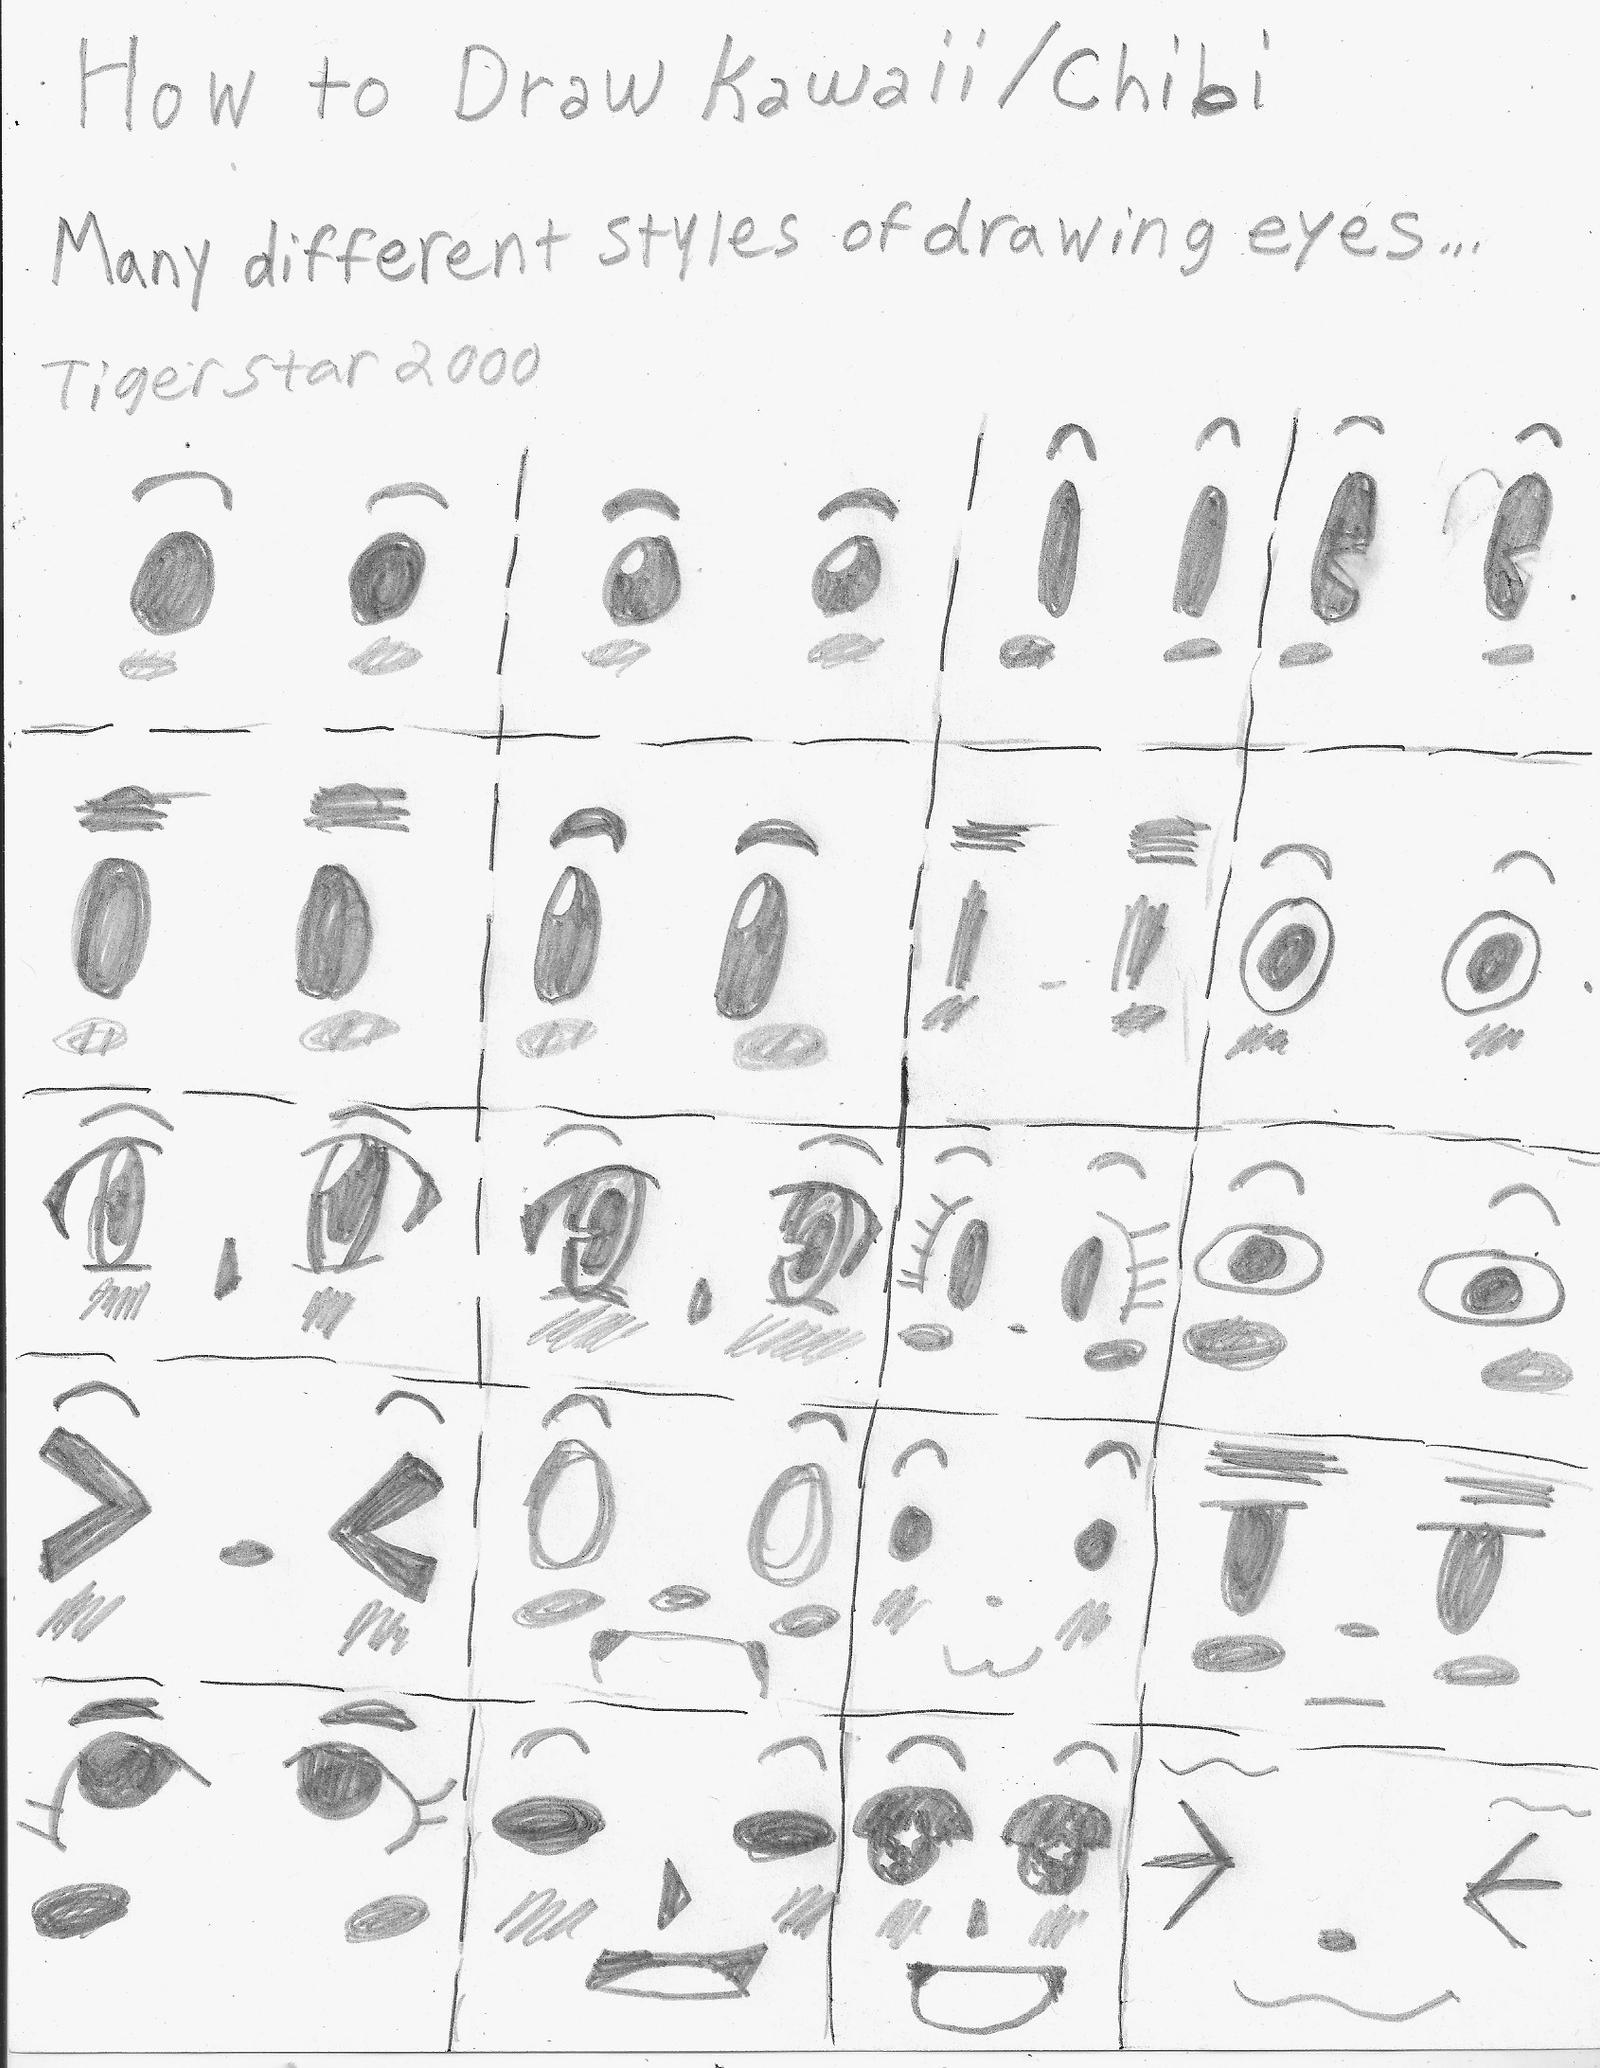 how to draw kawaii eyes step by step